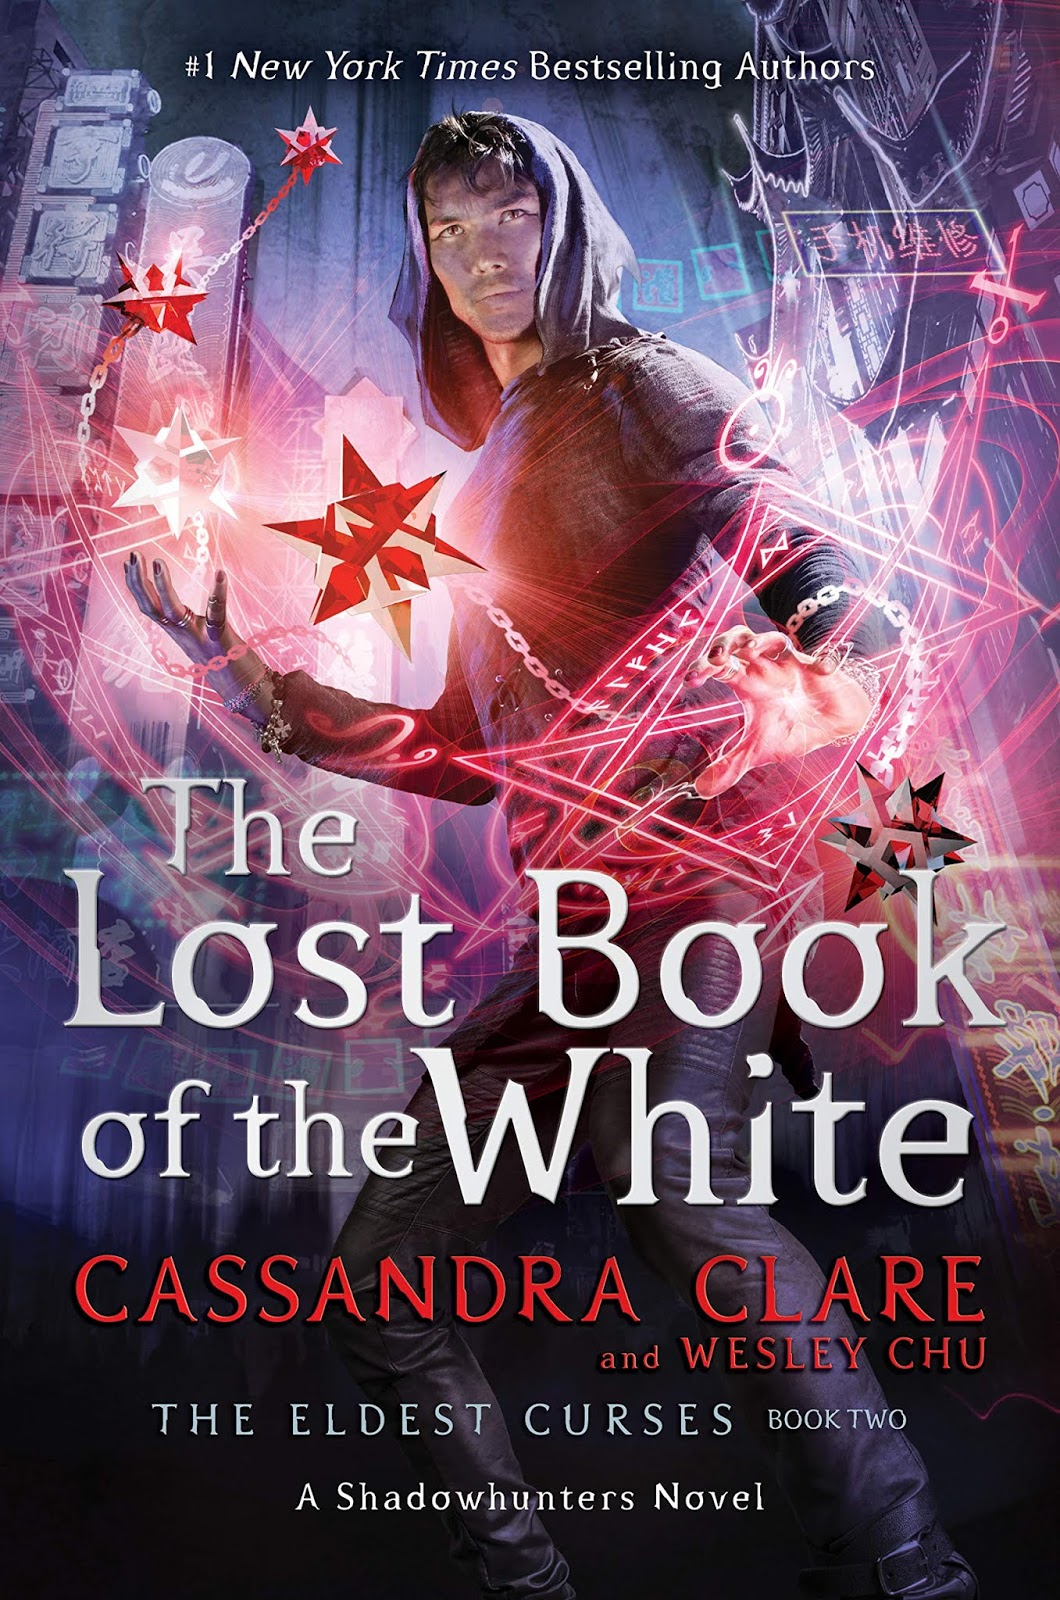 The Lost Book of the White by Cassandra Clare & Wesley Chu